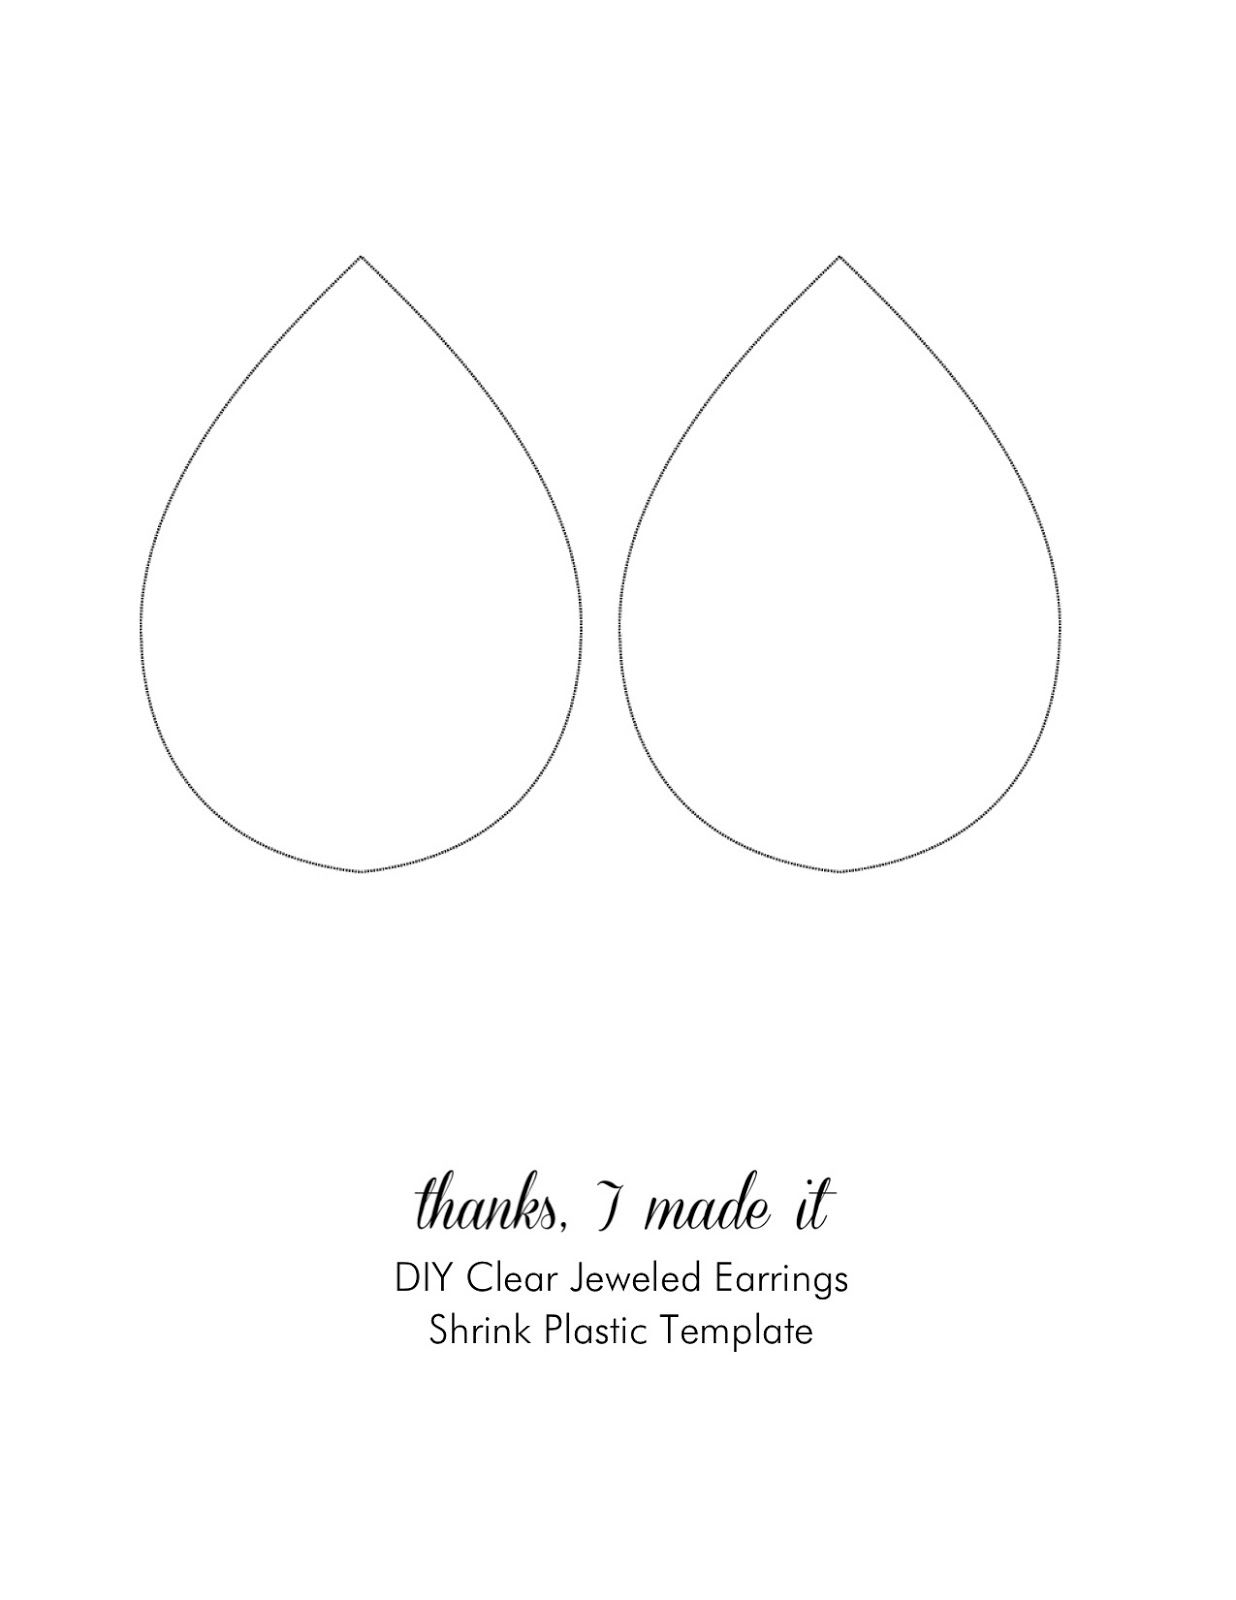 Faux Leather Earring Template : leather, earring, template, Earring+template.jpg, 1,236×1,600, Pixels, Earring, Cards, Template,, Cards,, Leather, Earrings